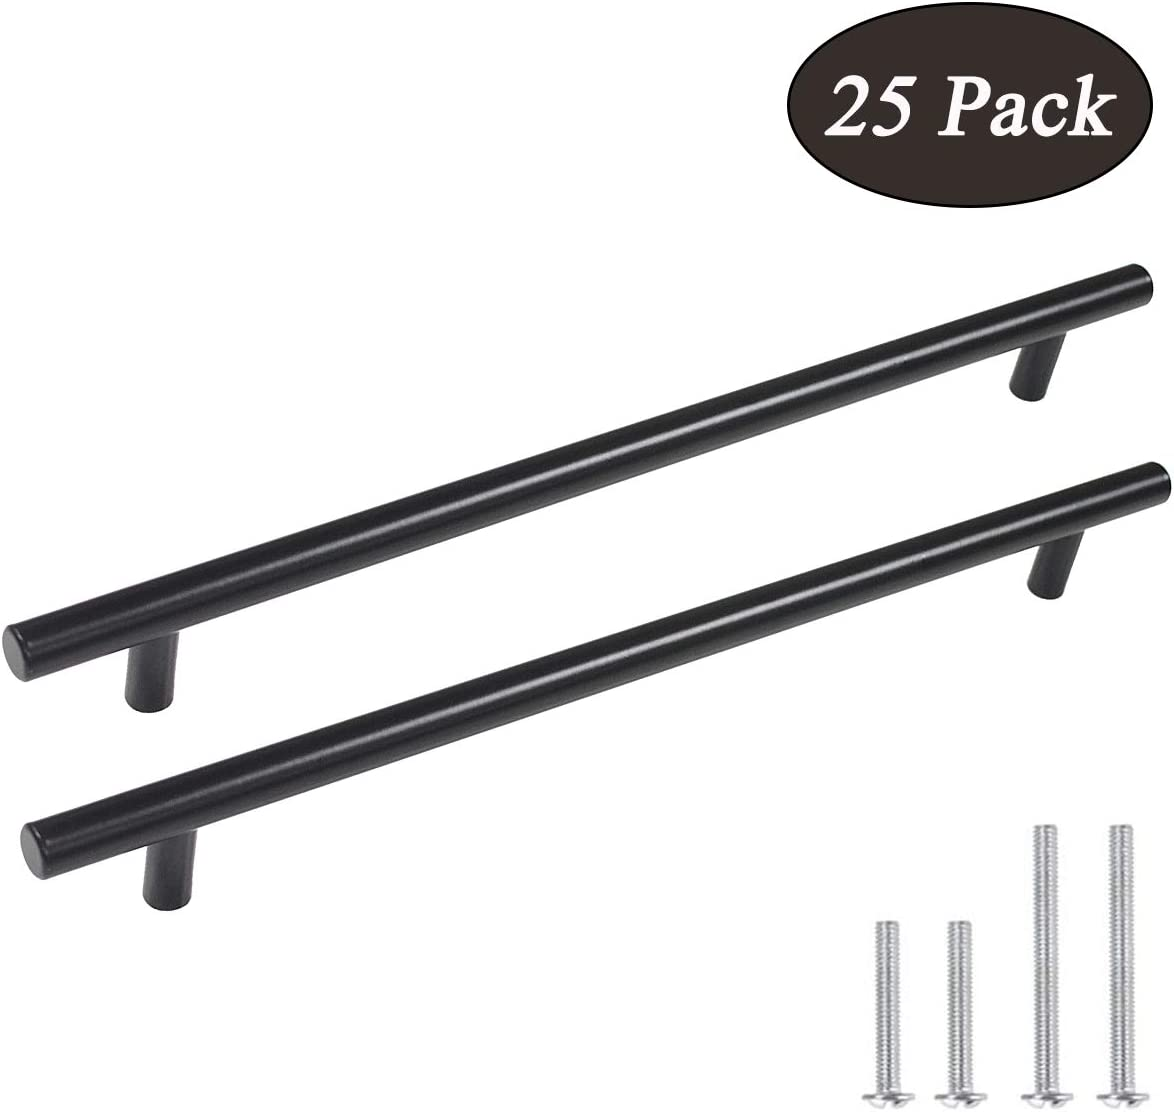 25 Pack Probrico Black Stainless Steel Kitchen Cabinet Door Handles T Bar Drawer Pulls Knobs Diameter 1//2 inch Hole Centers:3inch-5inch Length